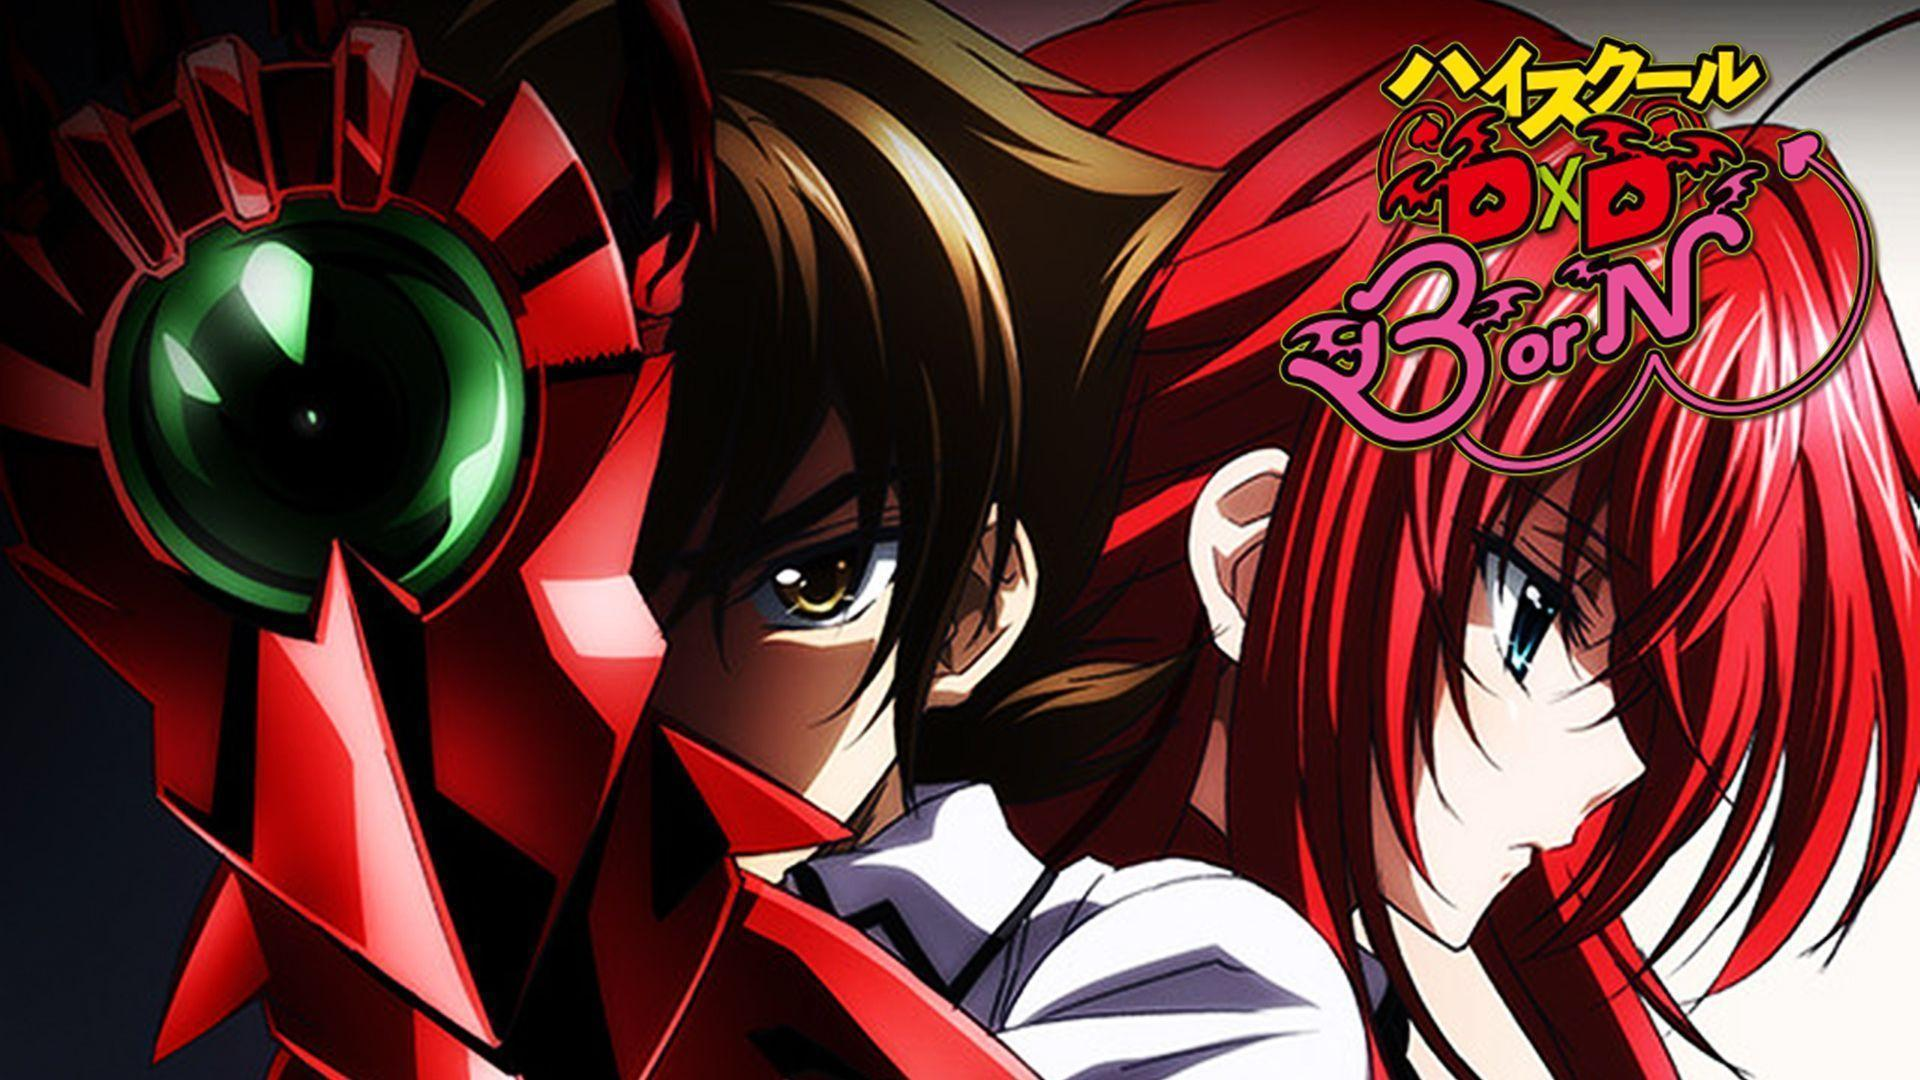 High School Dxd Wallpapers Top Free High School Dxd